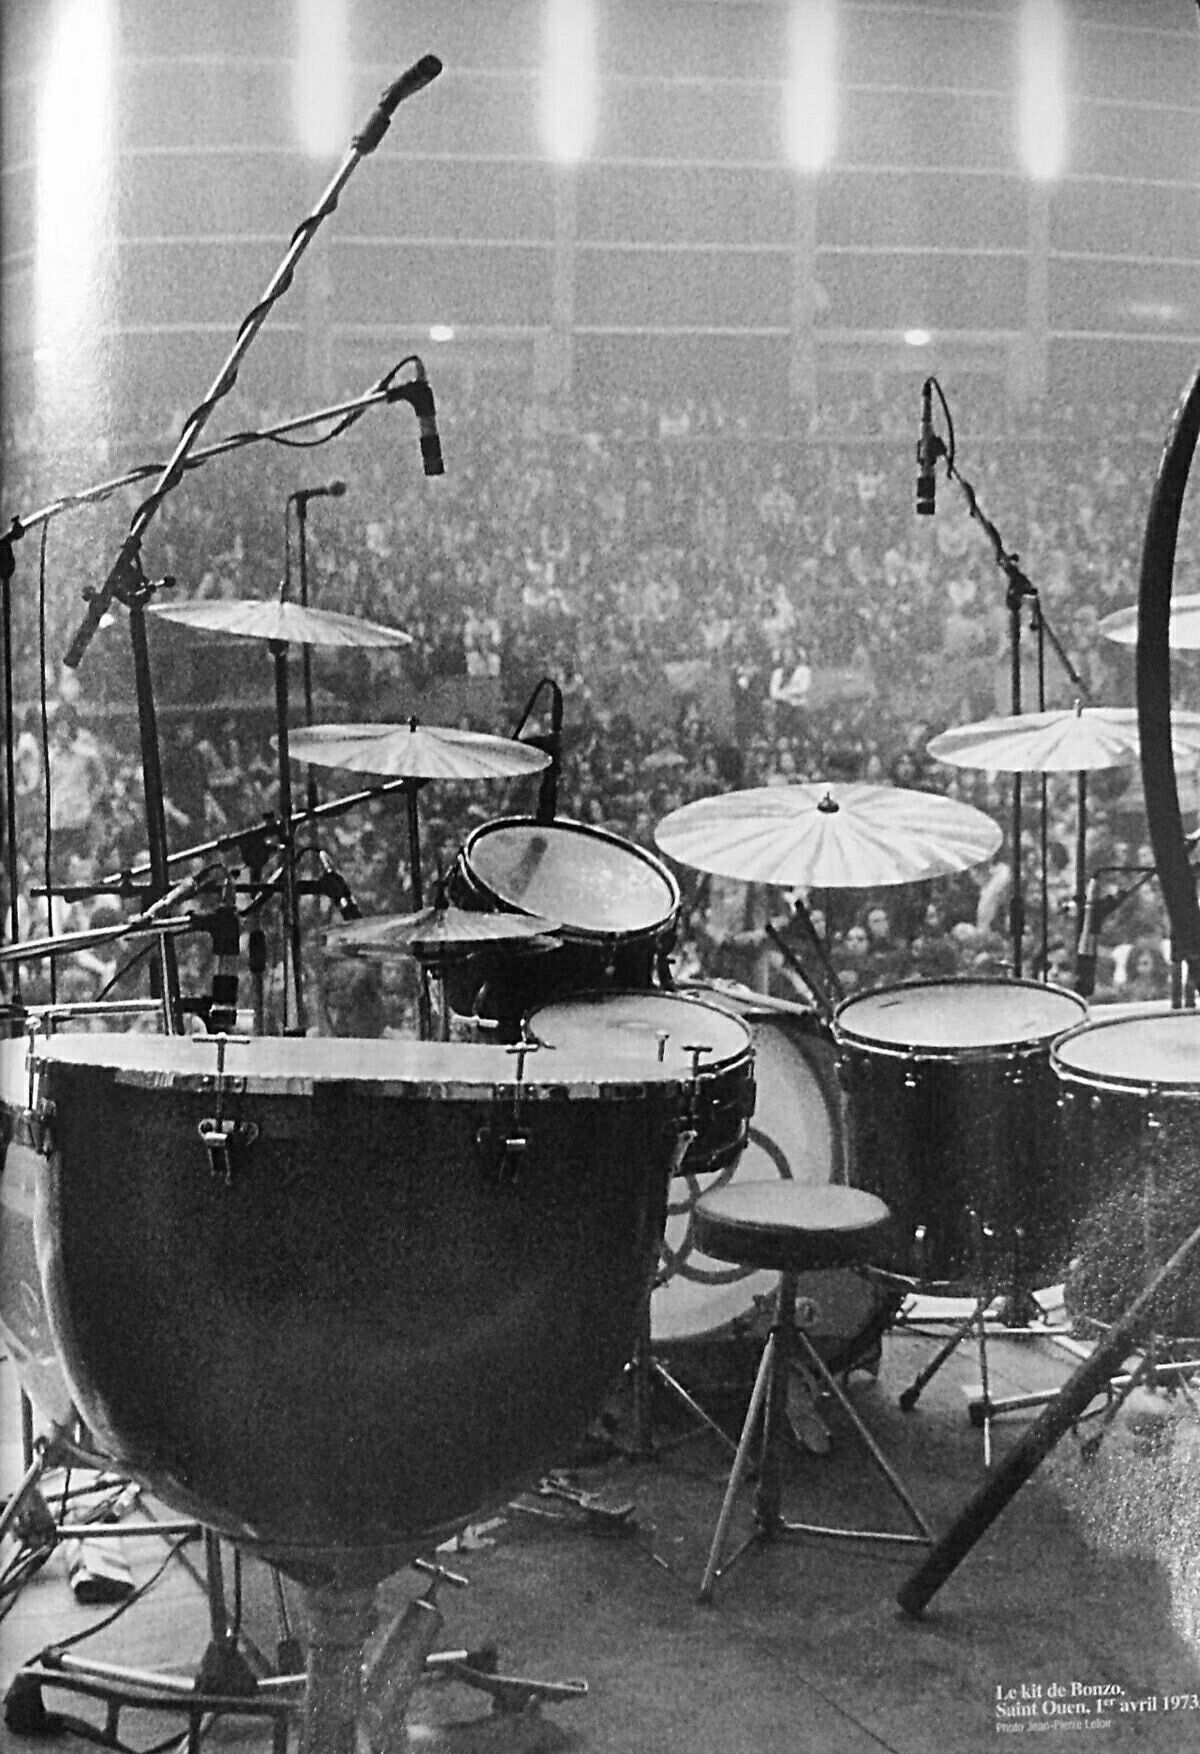 John Bonham S Drum Kit C 1973 Led Zeppelin Drum Sets